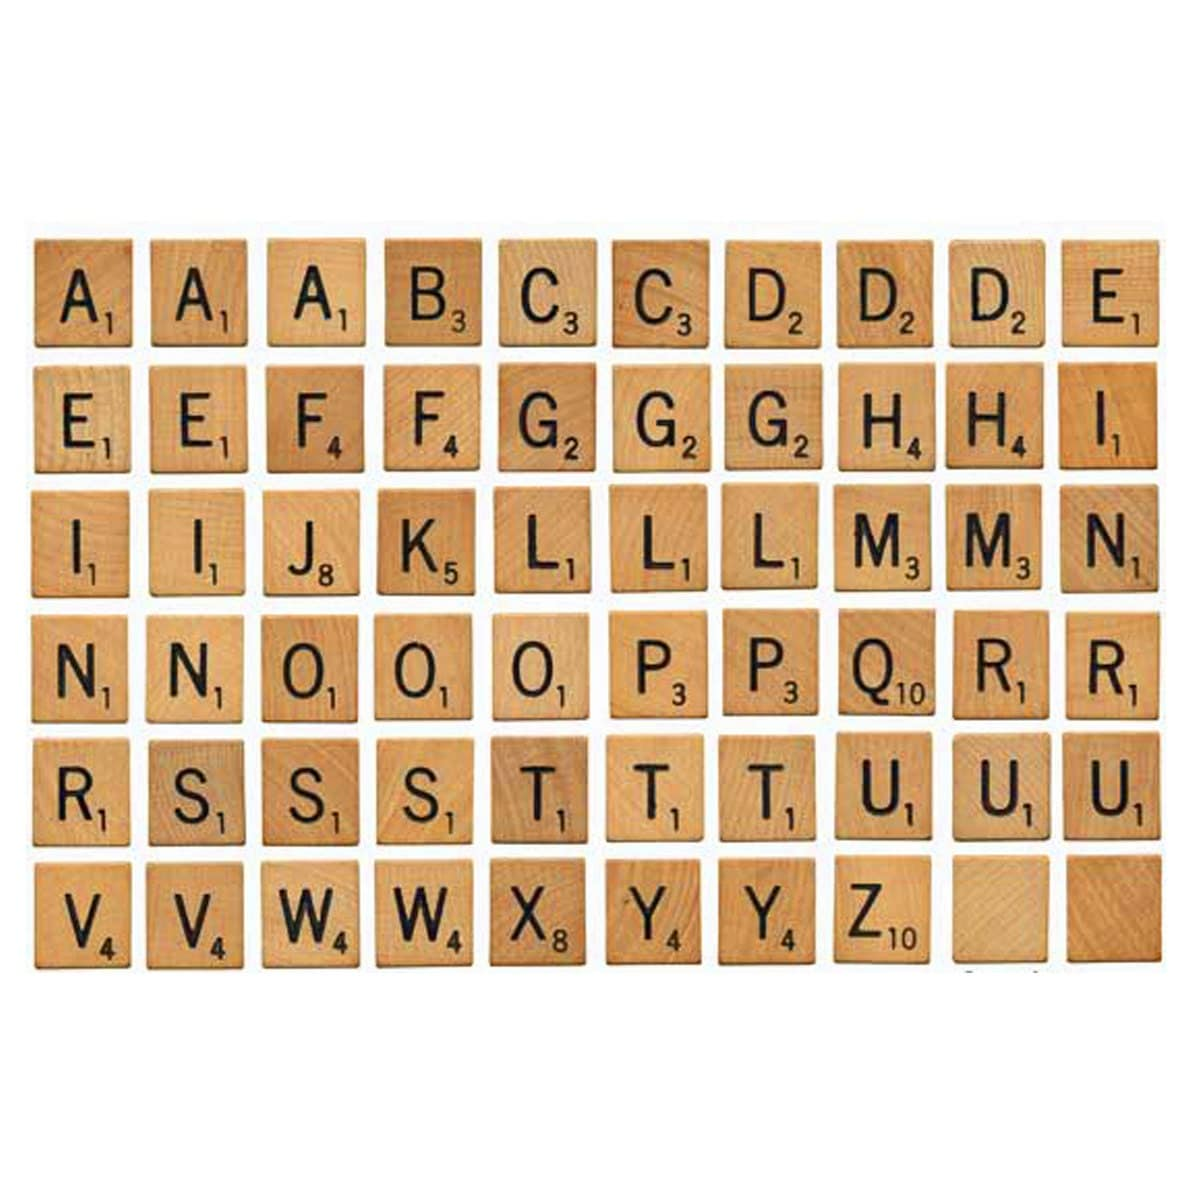 scrabble tiles digital print out by sscraftsupplies on etsy. Black Bedroom Furniture Sets. Home Design Ideas